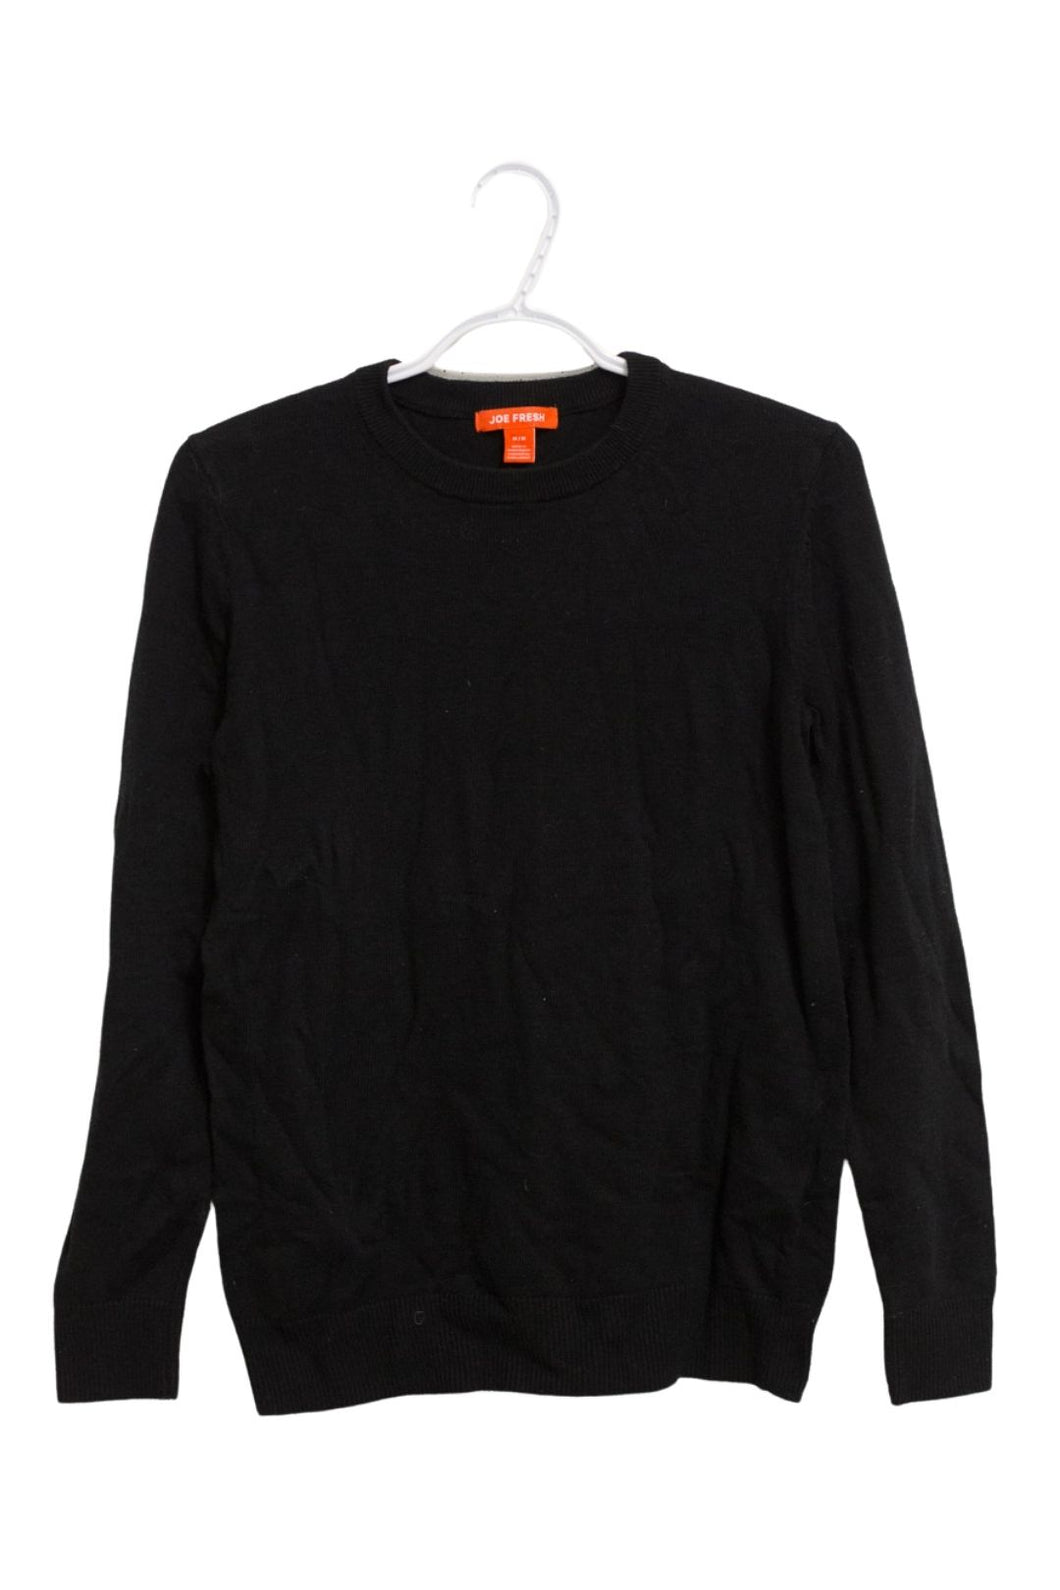 (M) JOE FRESH SWEATER